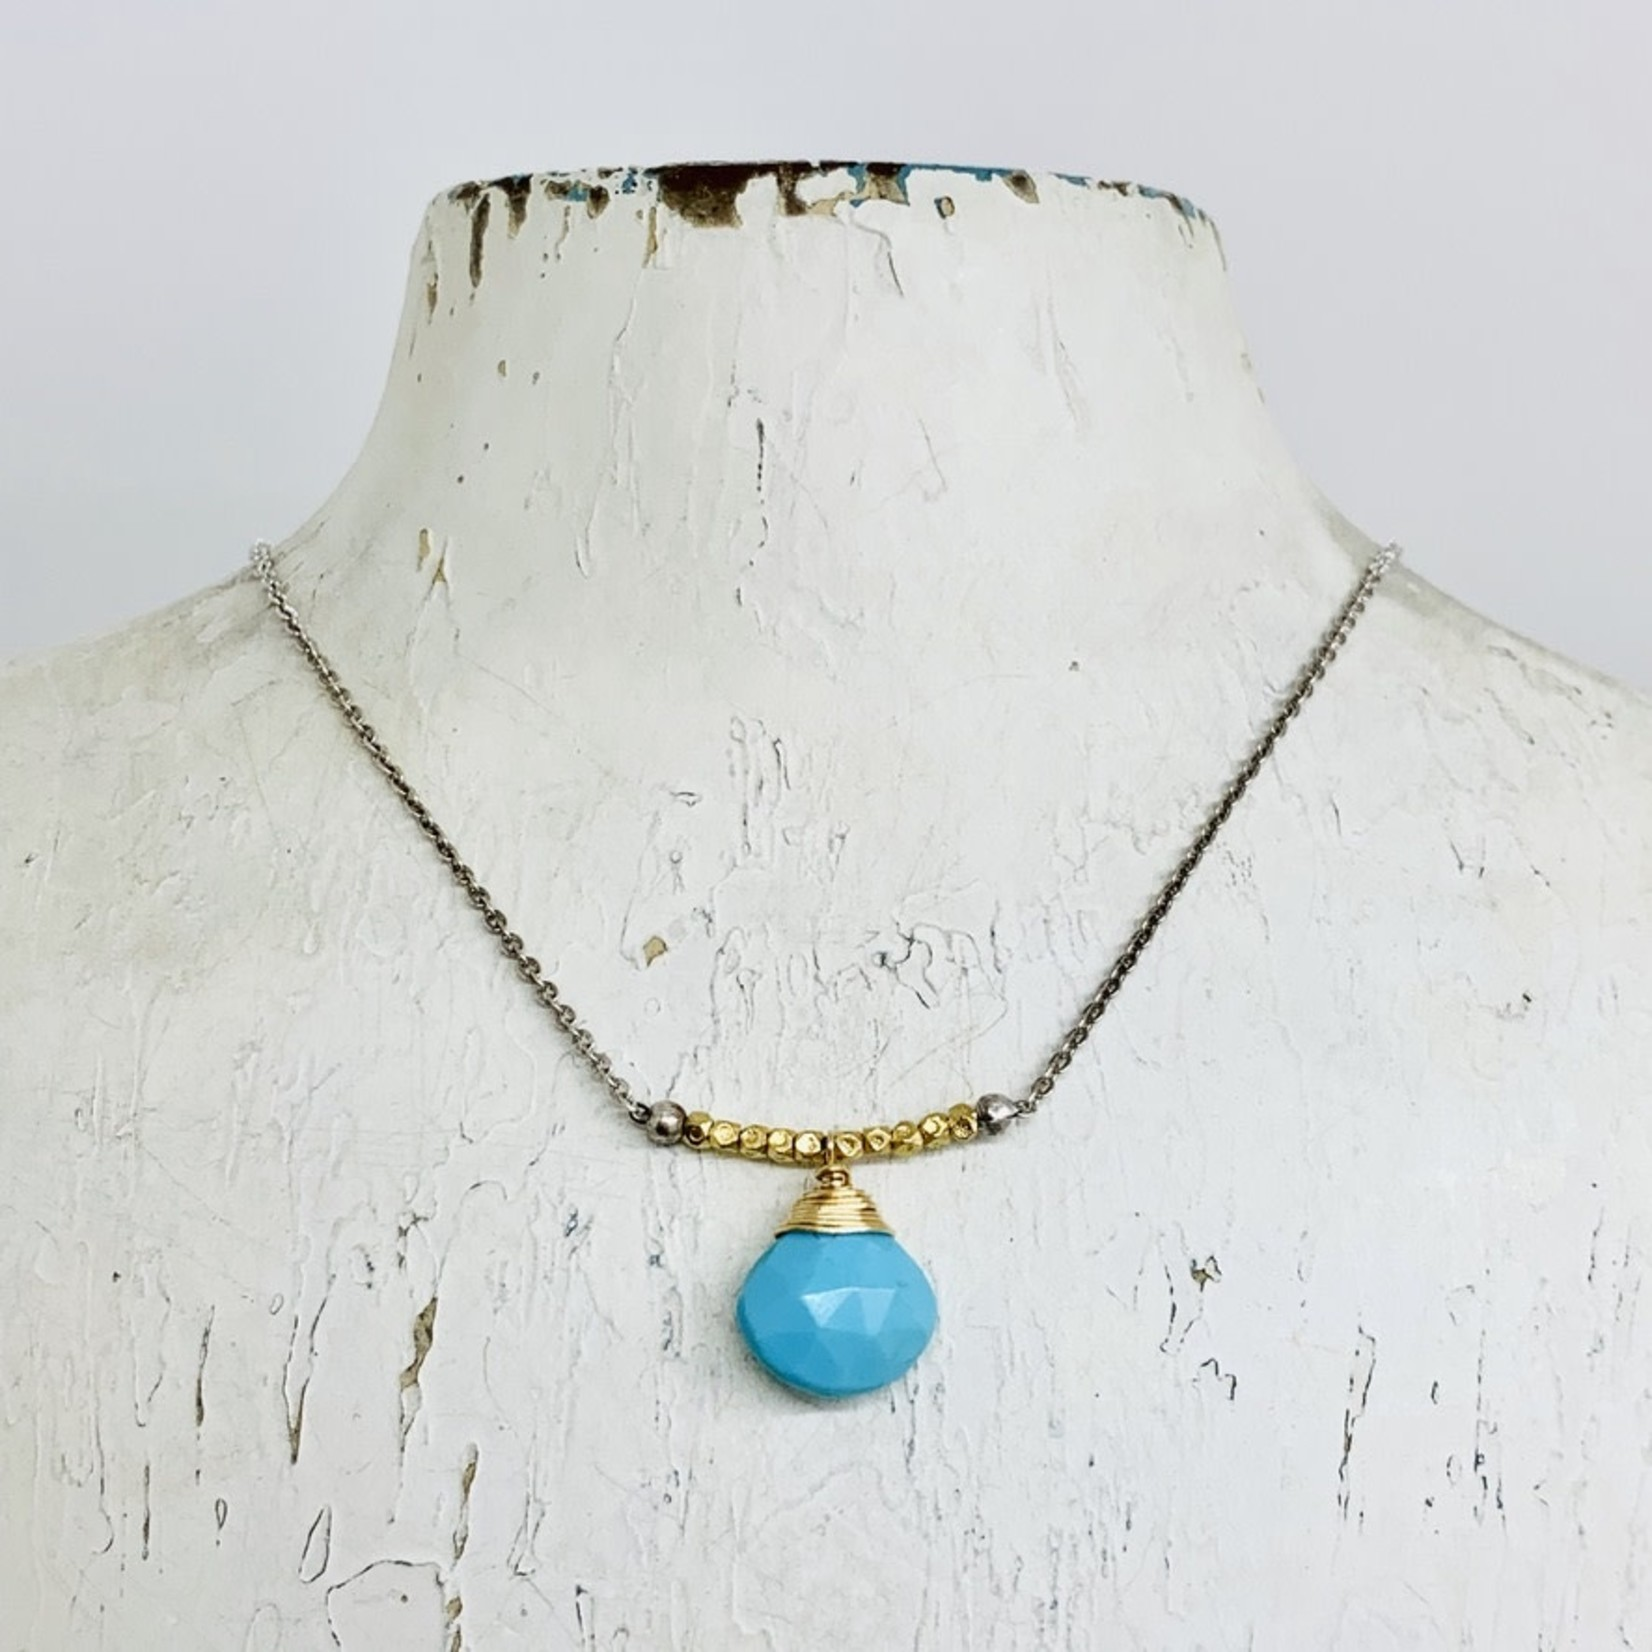 Handmade Necklace with Faceted Turquoise wrapping in 14kt gold filled wire and strung on vermeil bead and oxidized sterling chain